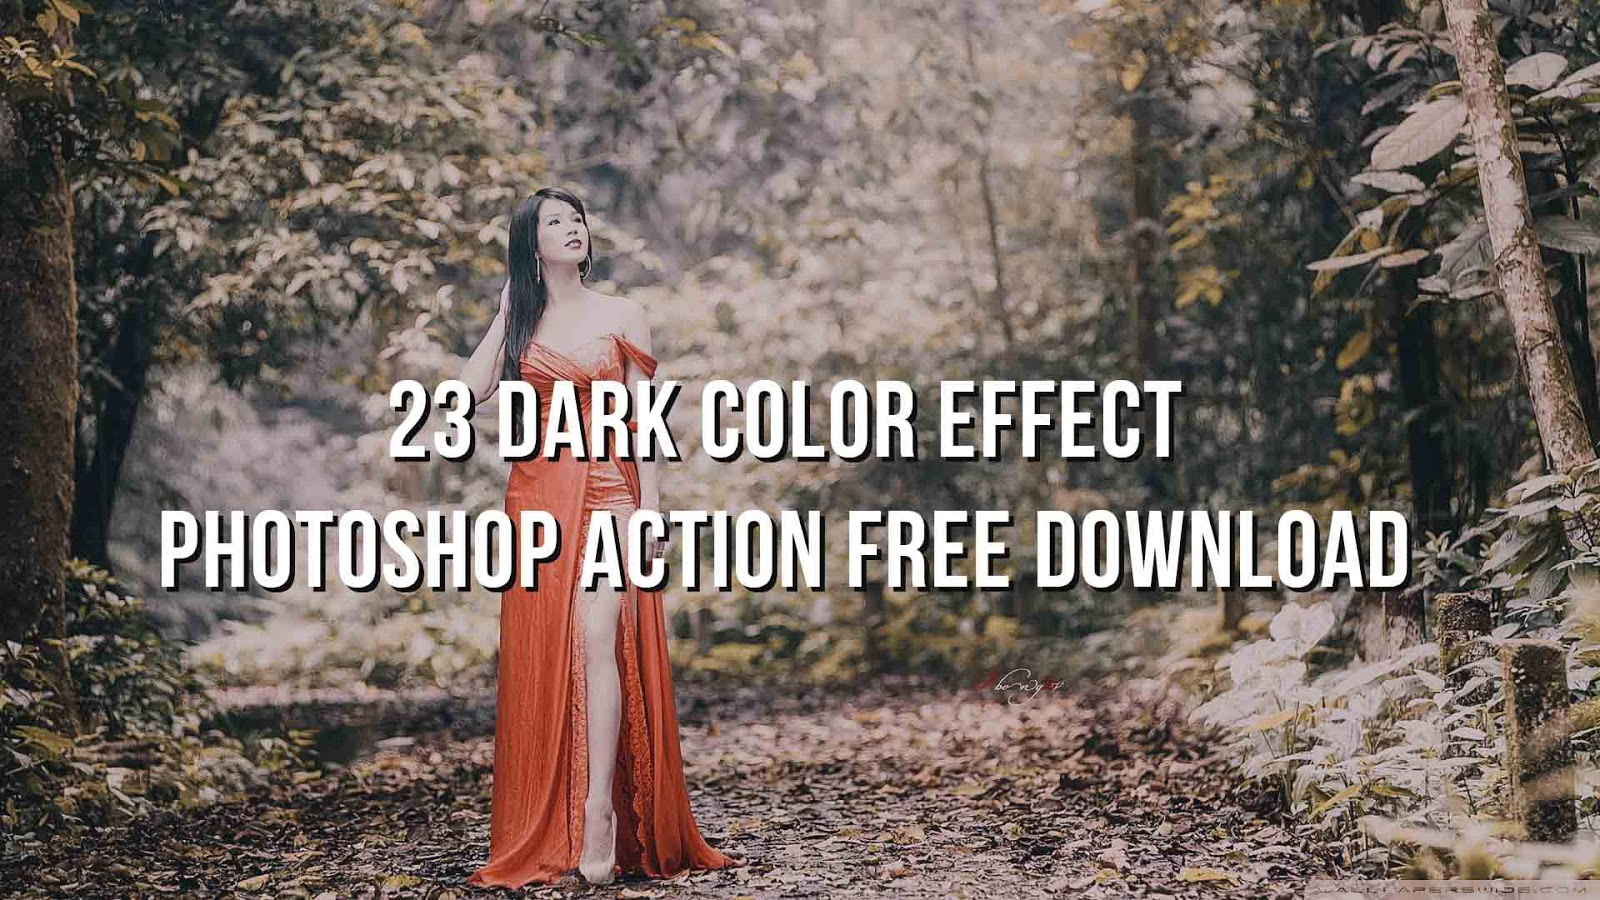 23 Dark Color Effect Photoshop Action Free Download